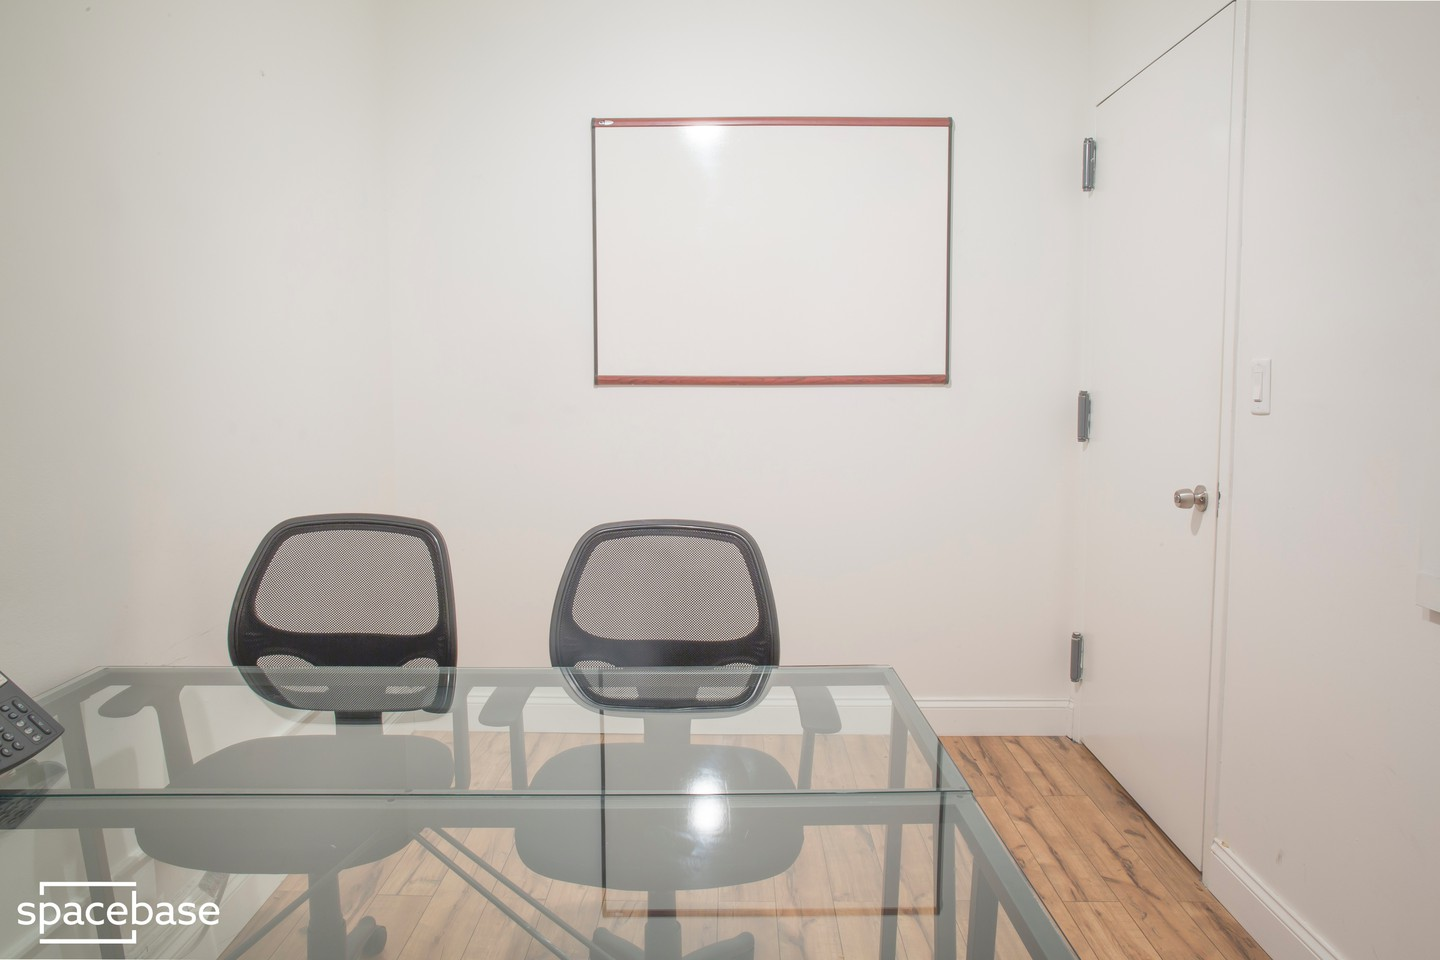 NYC conference rooms Coworking Space Sage Workspace - Room J image 10